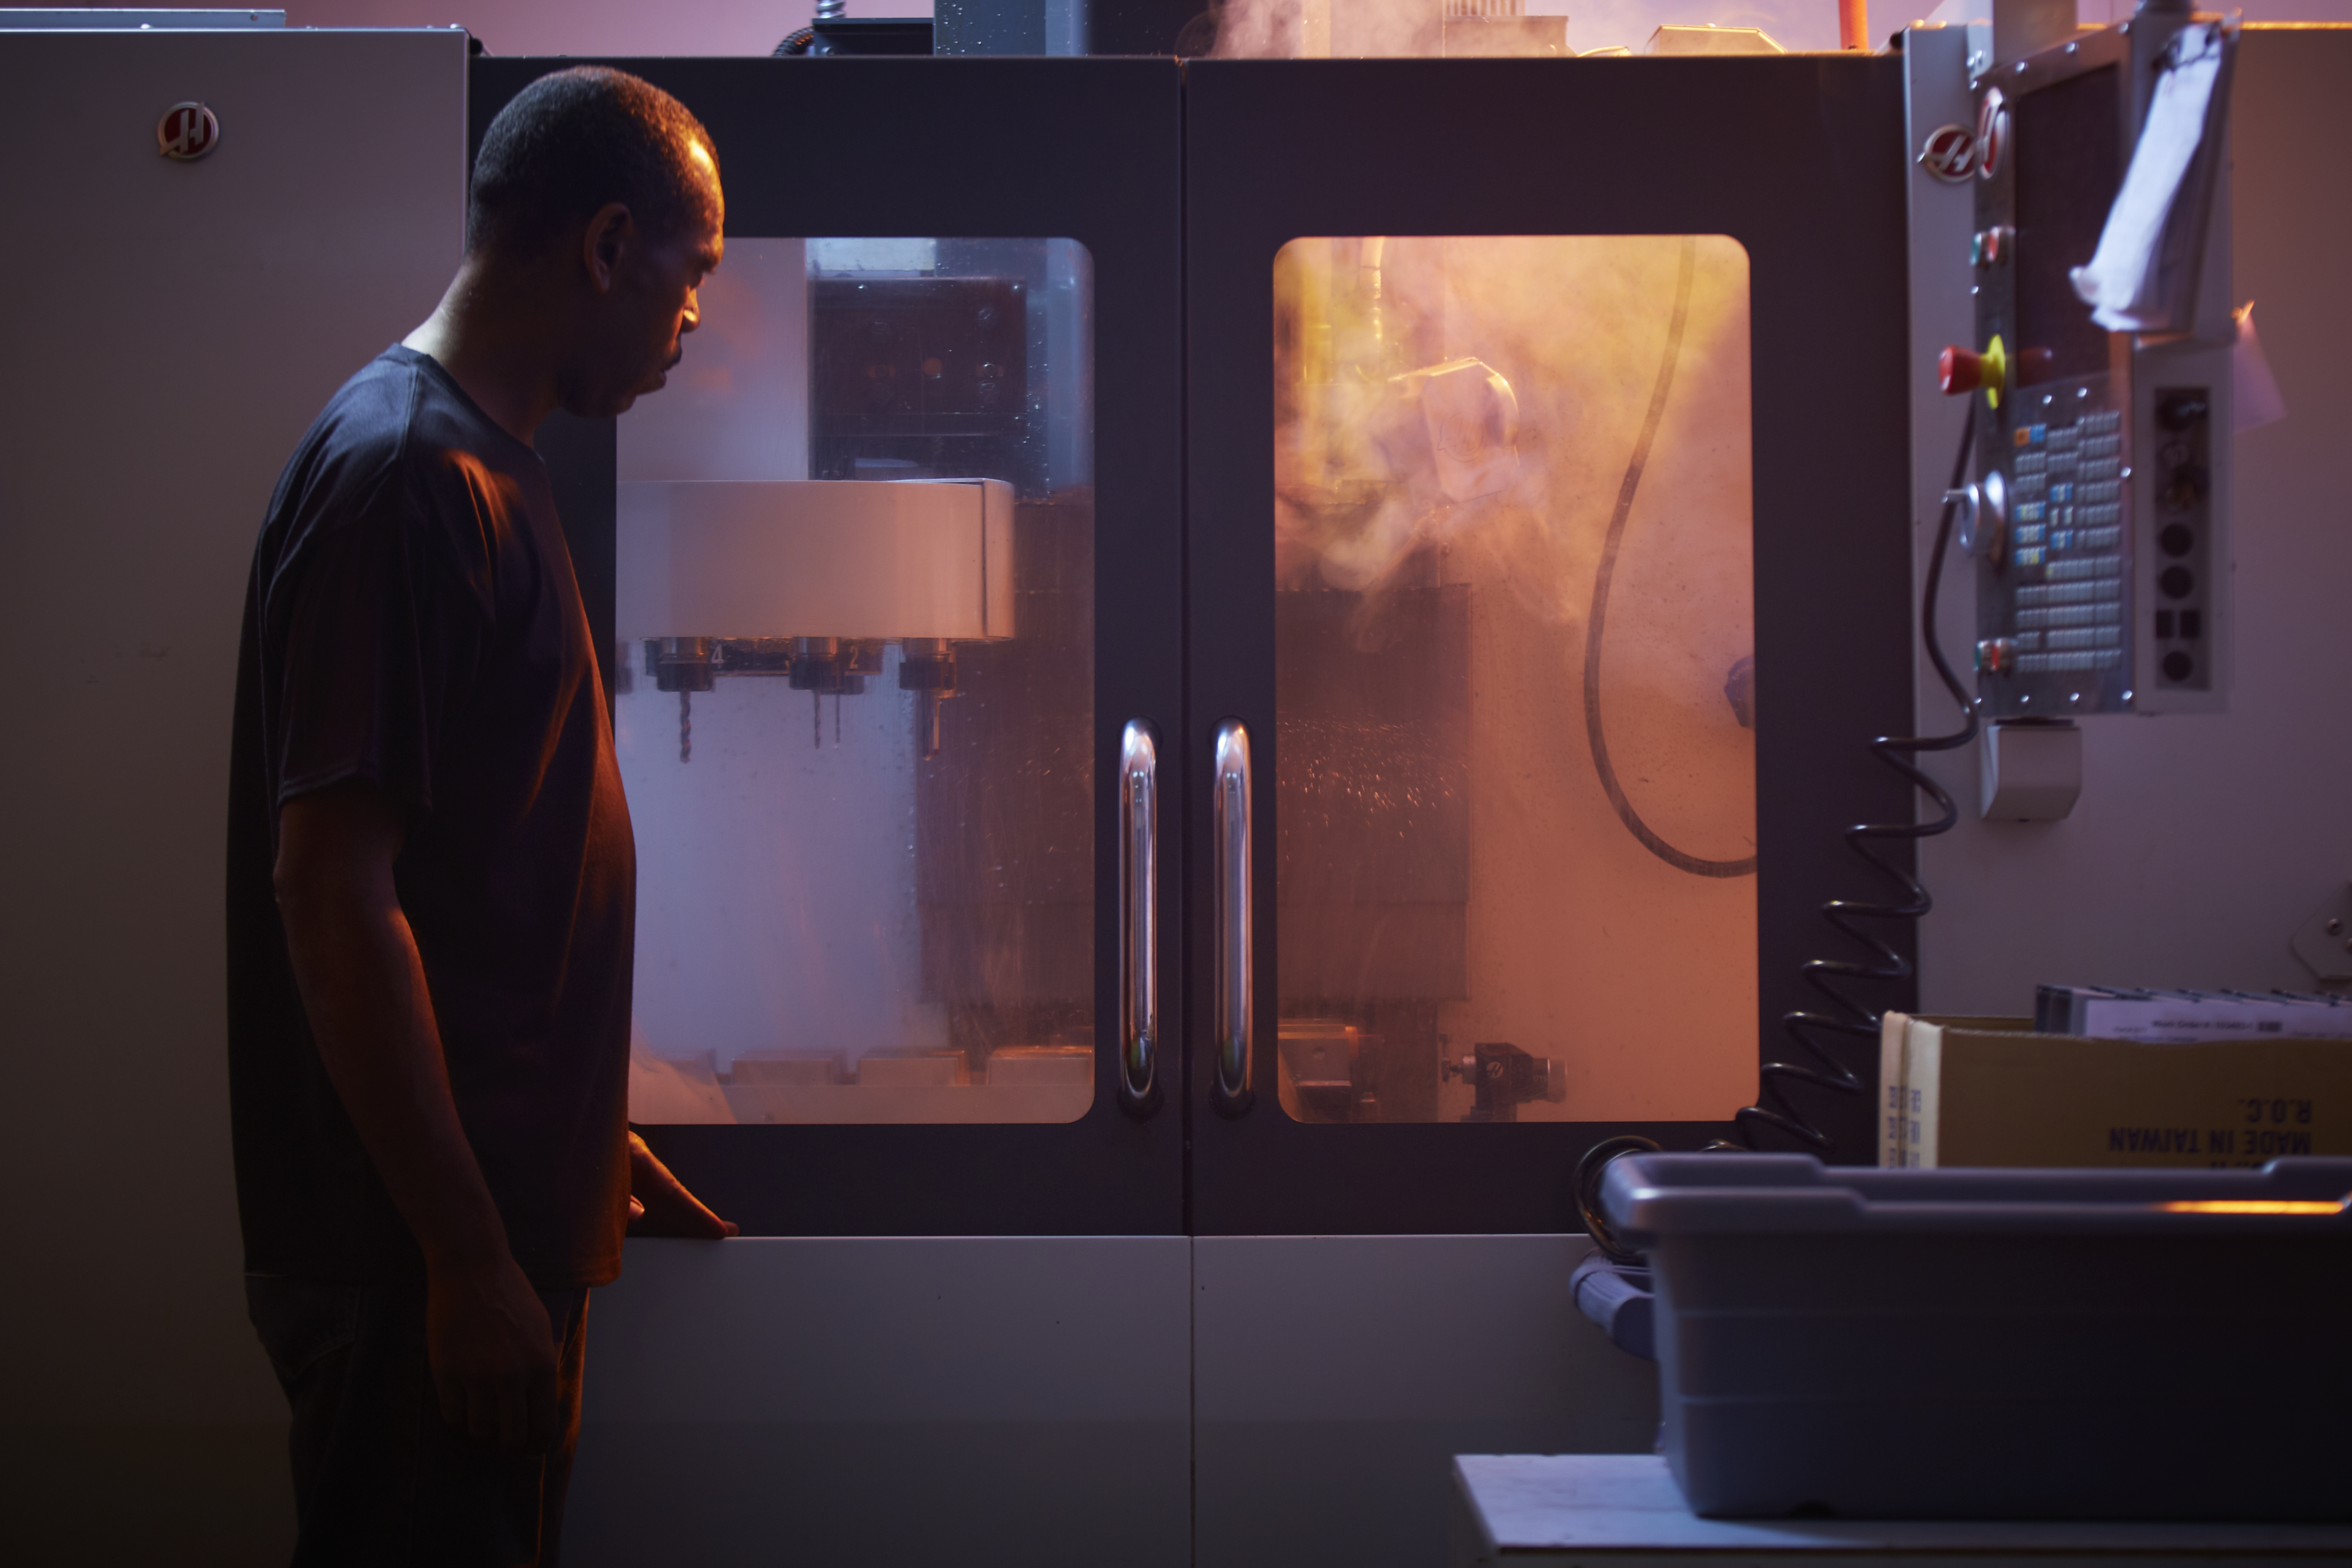 An employee inspects the enclosures as it passes through the CNC machine.